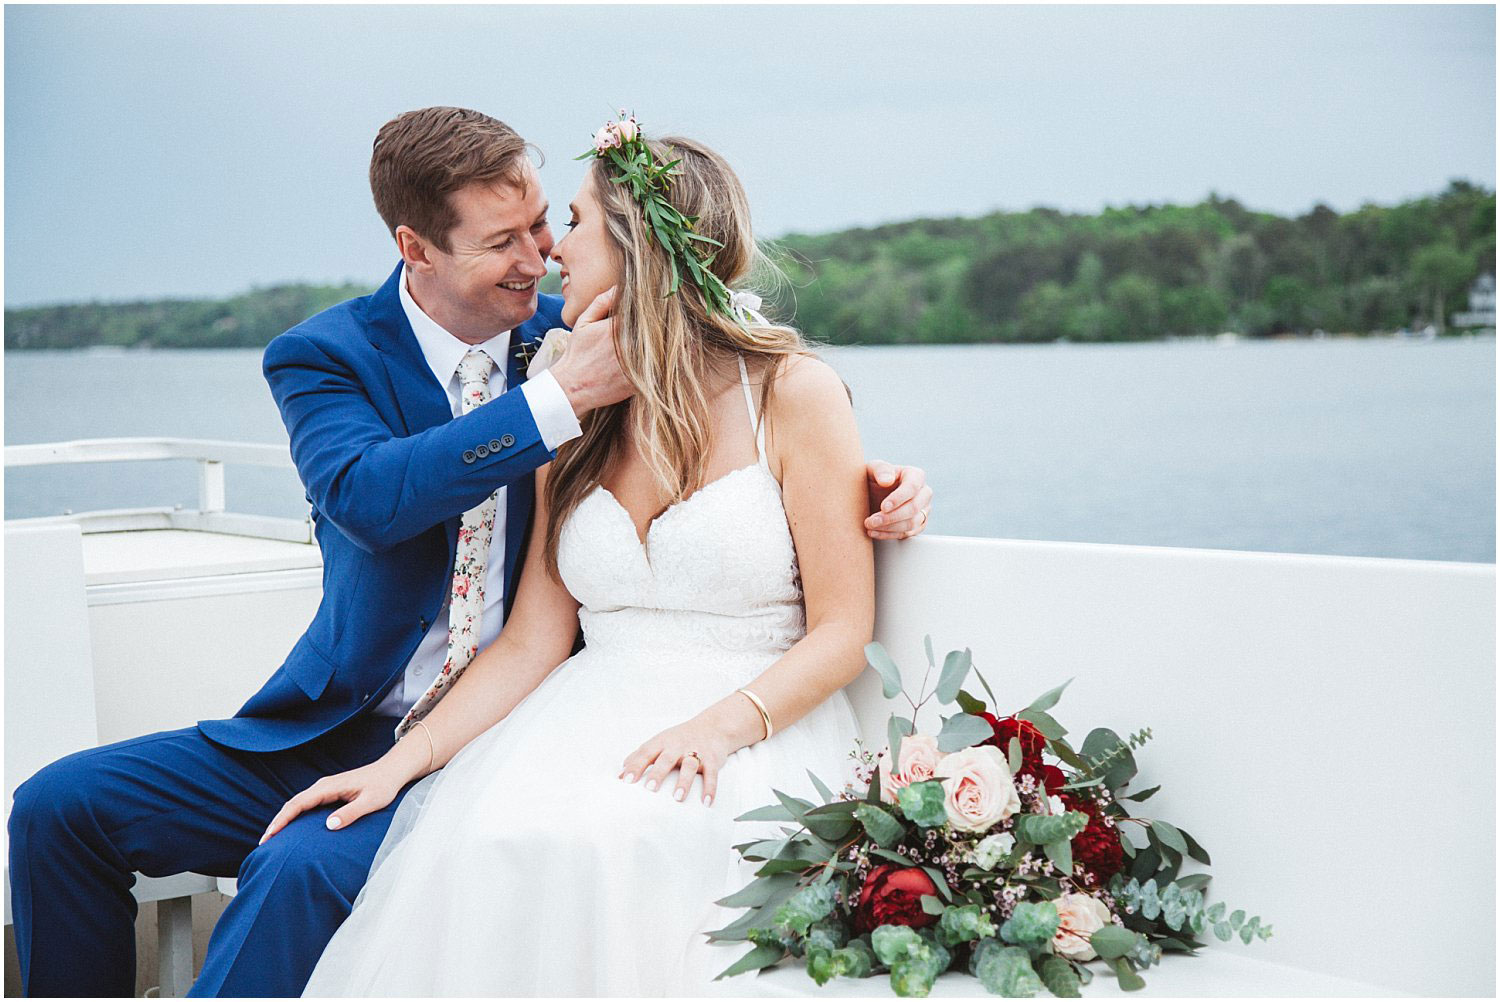 Bride and Groom on a boat in a lake at a wedding at Camp Bournedale in Plymouth, Massachusetts taken by Nicole Chaput Photography